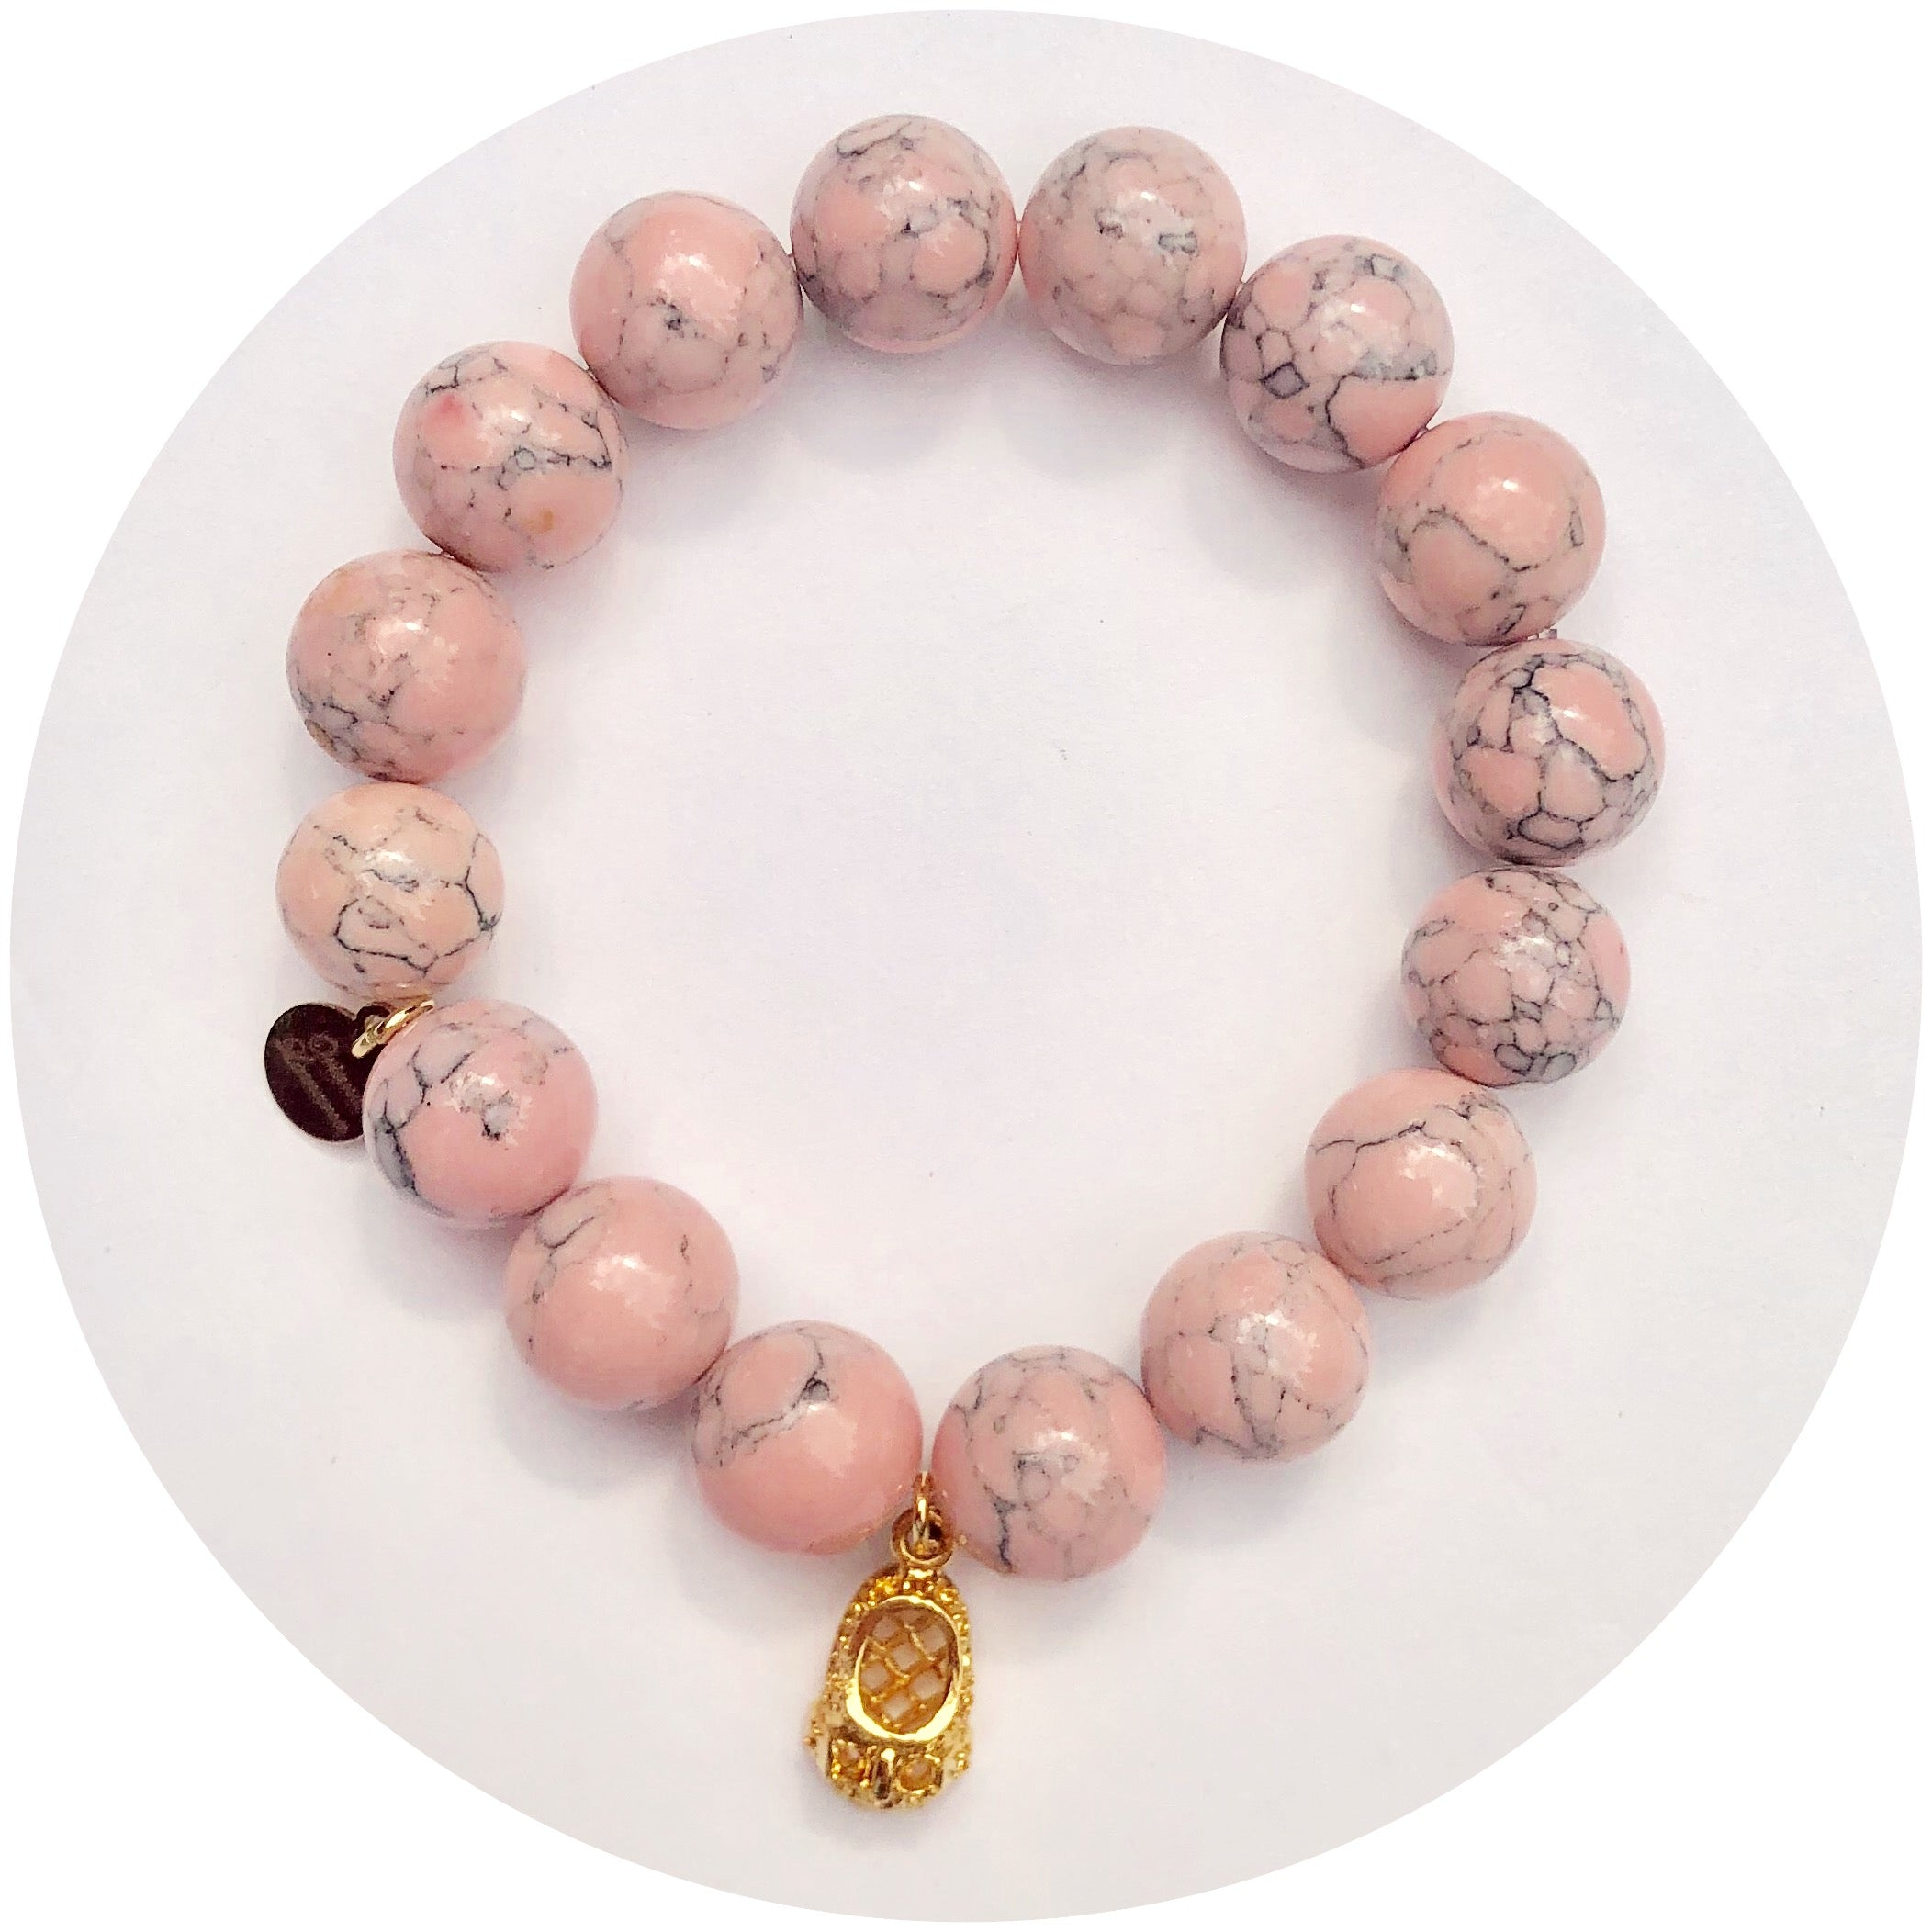 Light Pink Howlite with Baby Slipper Pendant - Oriana Lamarca LLC